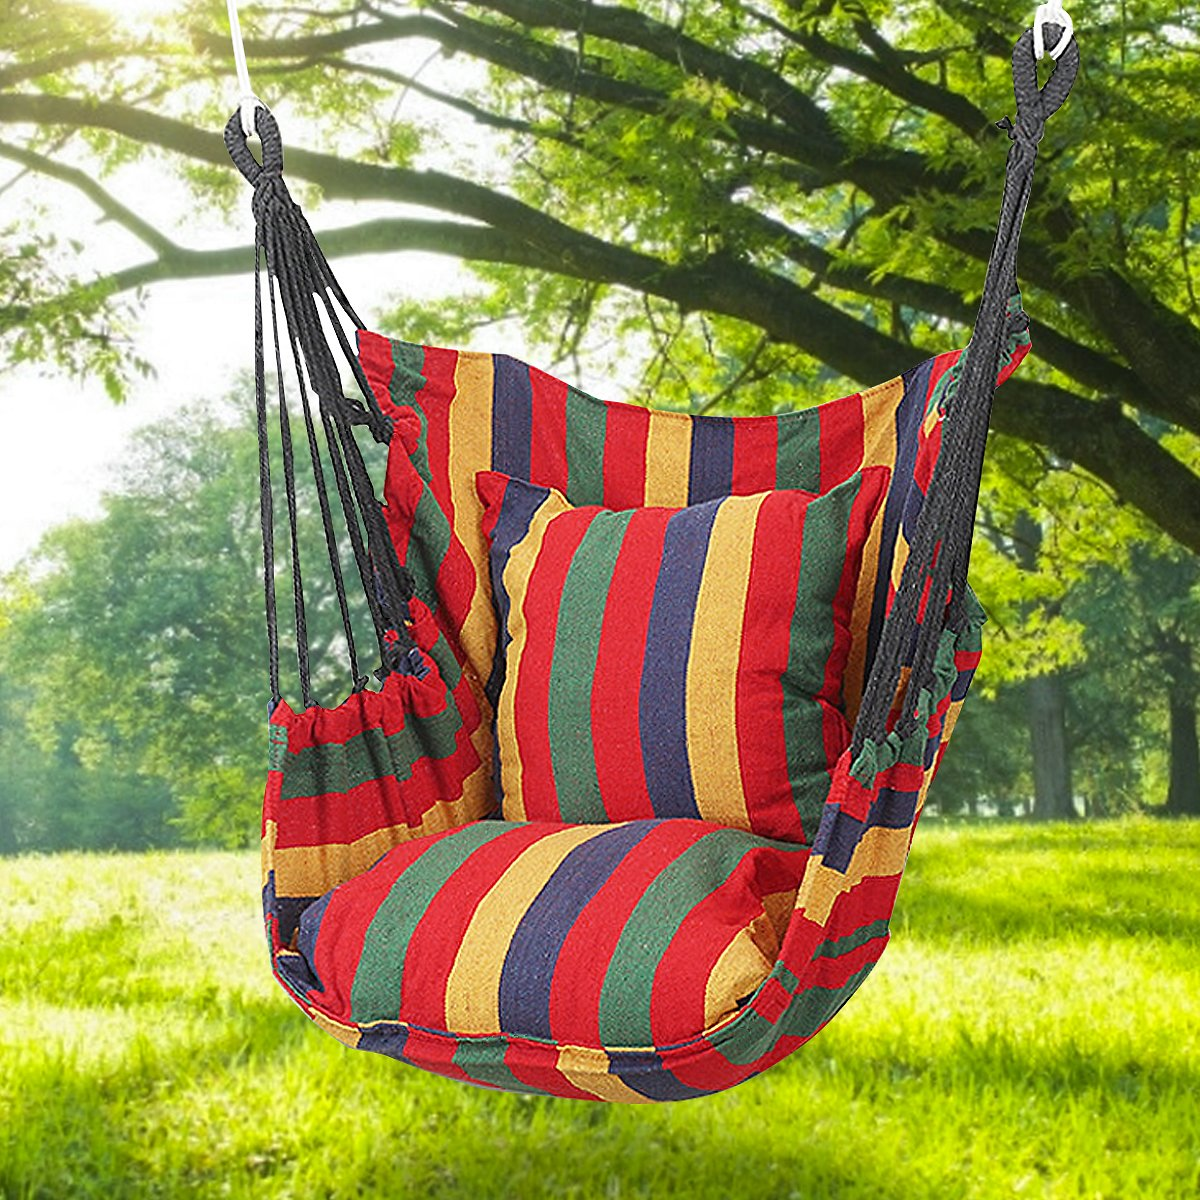 Outdoor Hammock Chair Swing, Carrying Bag for Indoor Outdoor,Large Hanging Rope Seat with 2 Pillow Storage Bag, Weight Capacity